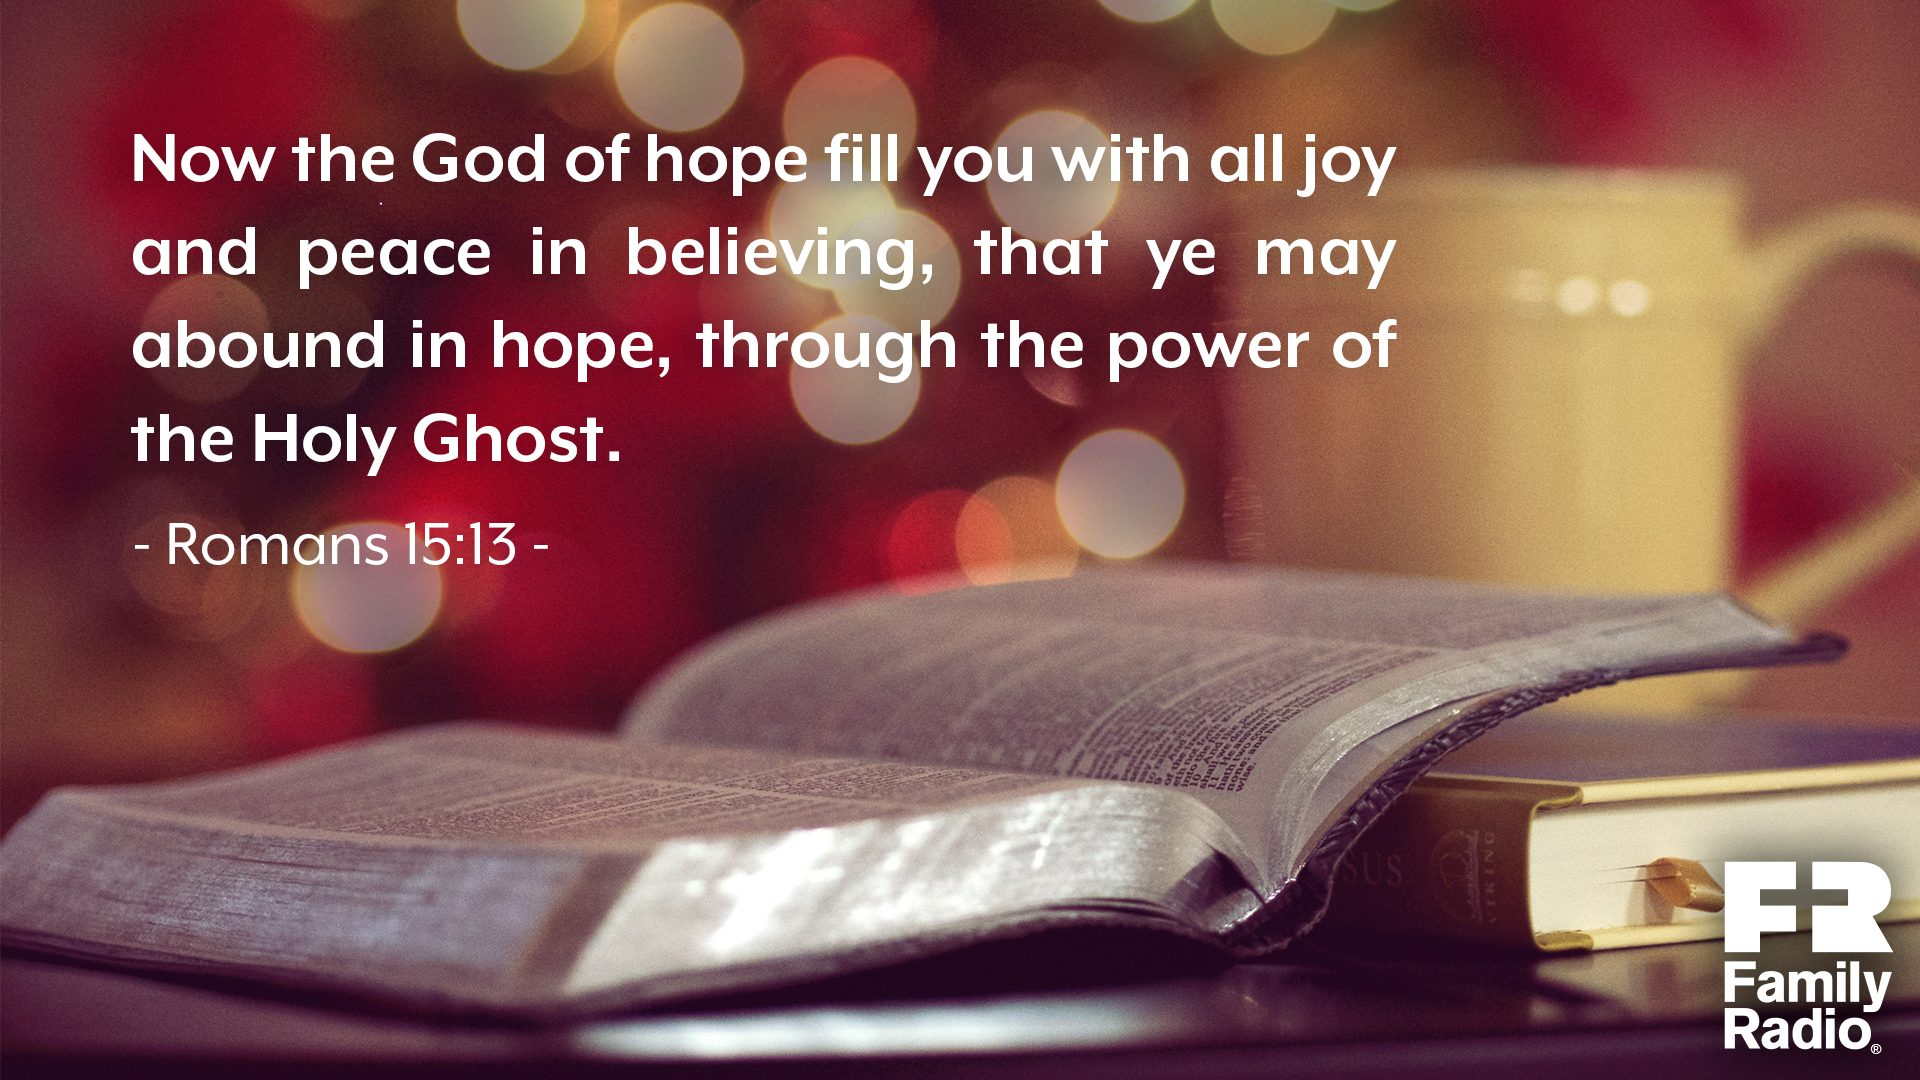 """Now the God of hope fill you with all joy and peace in believing, that ye may abound in hope, through the power of the Holy Ghost."""